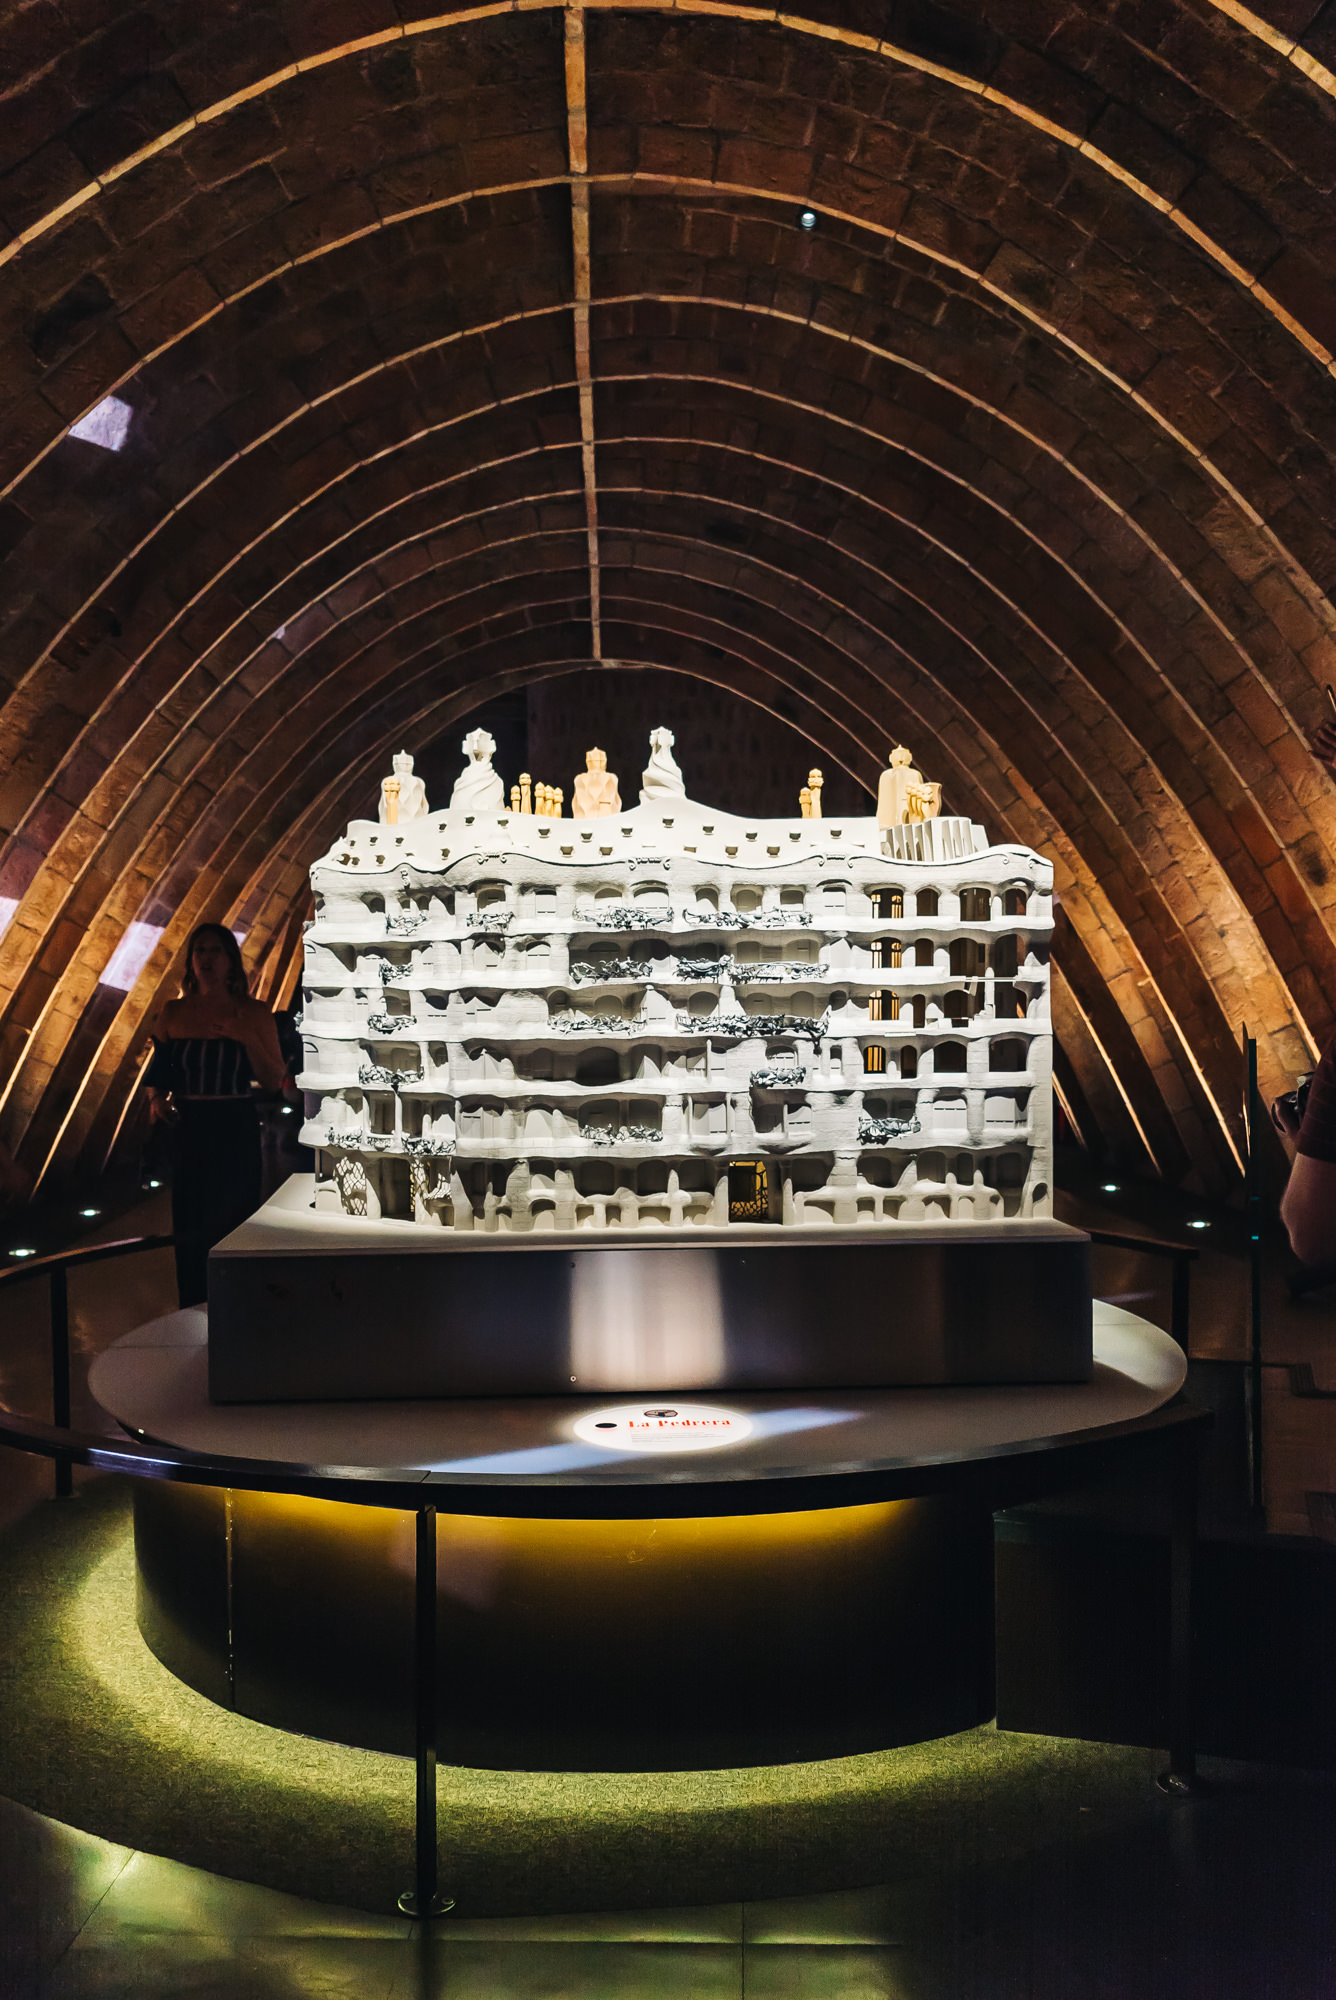 Another model of Casa Mila in the Attic section